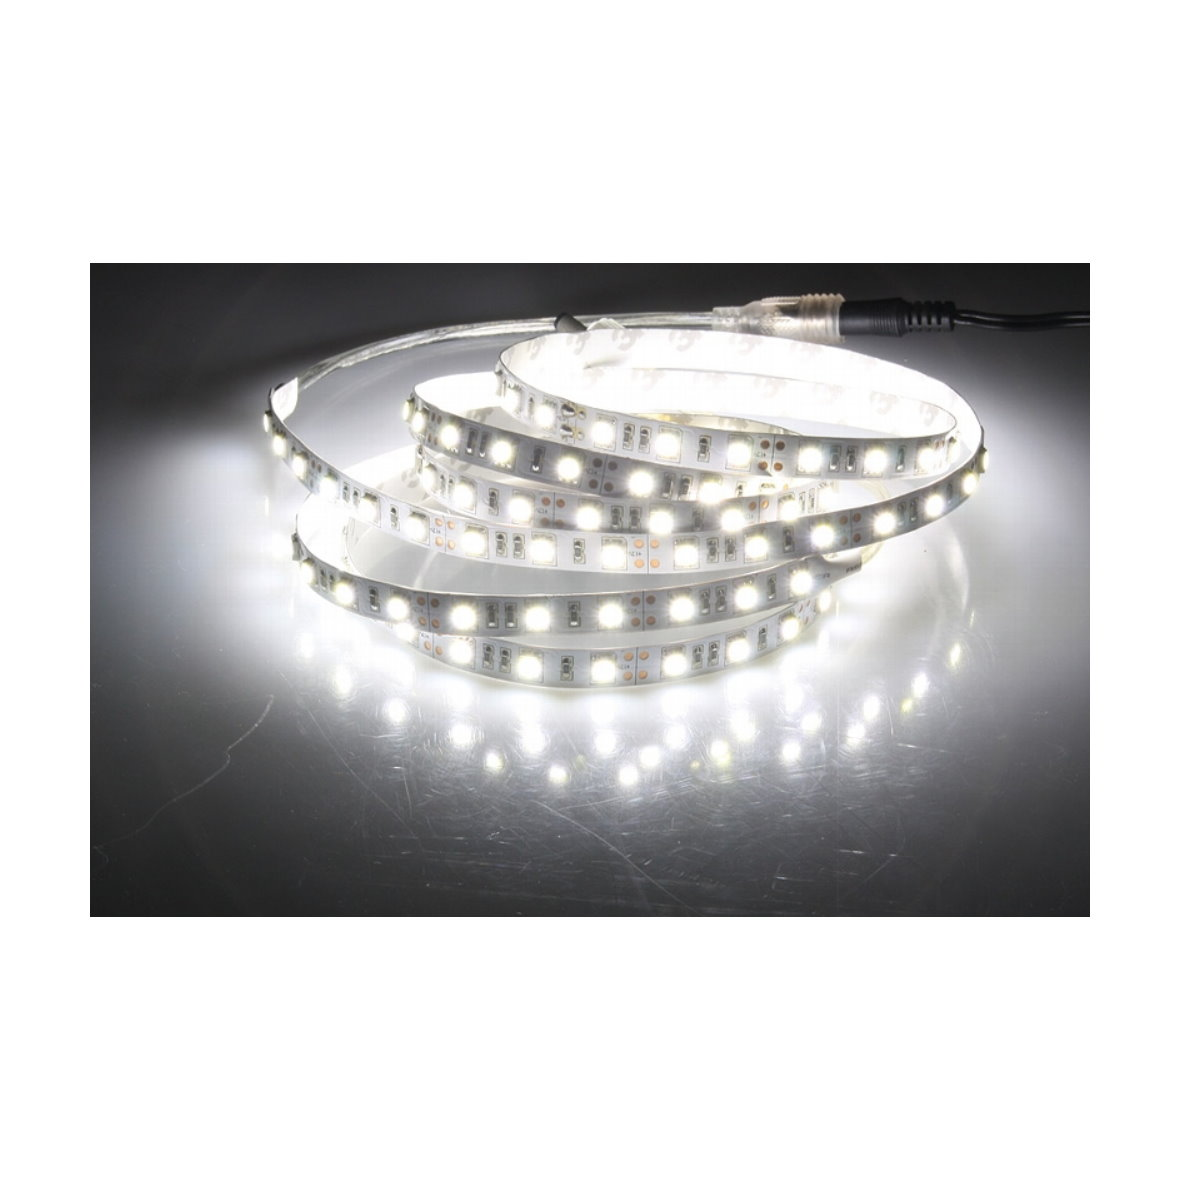 13 95 m led 5050 lichtband dimmbar 60 smd m strip. Black Bedroom Furniture Sets. Home Design Ideas